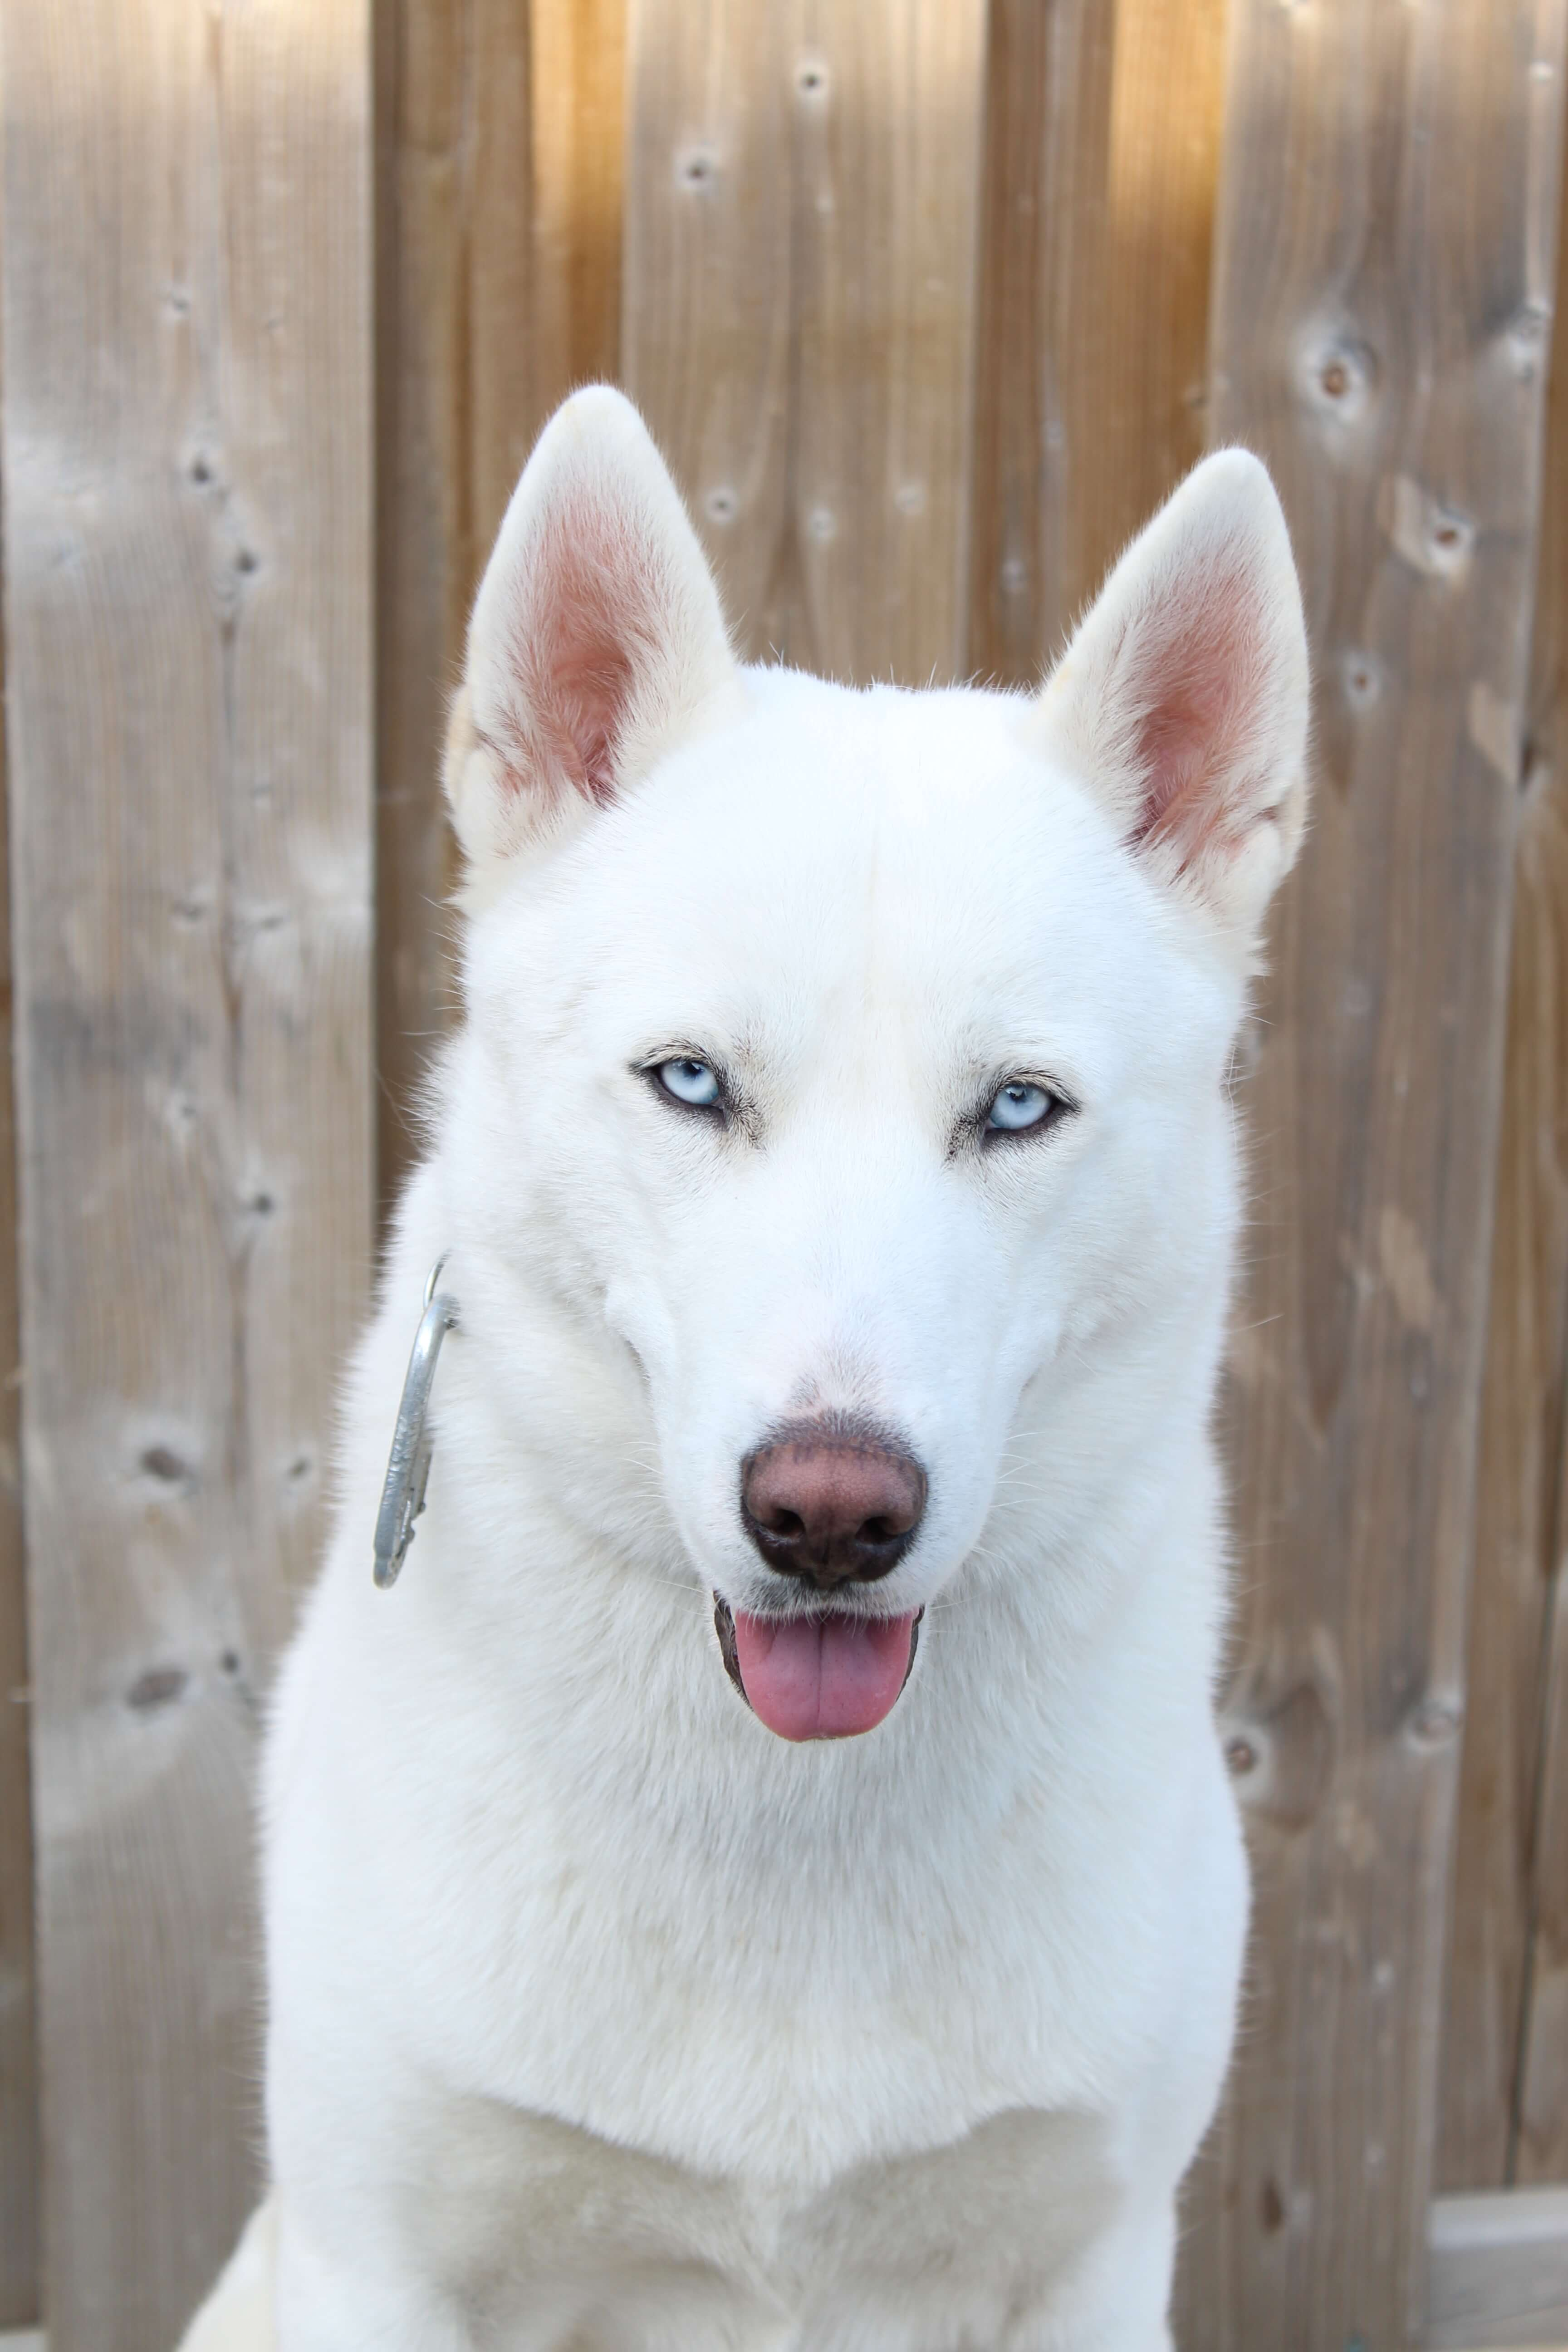 a beautiful pure white husky with bright blue eyes posing with his tongue out and his ears sticking up.